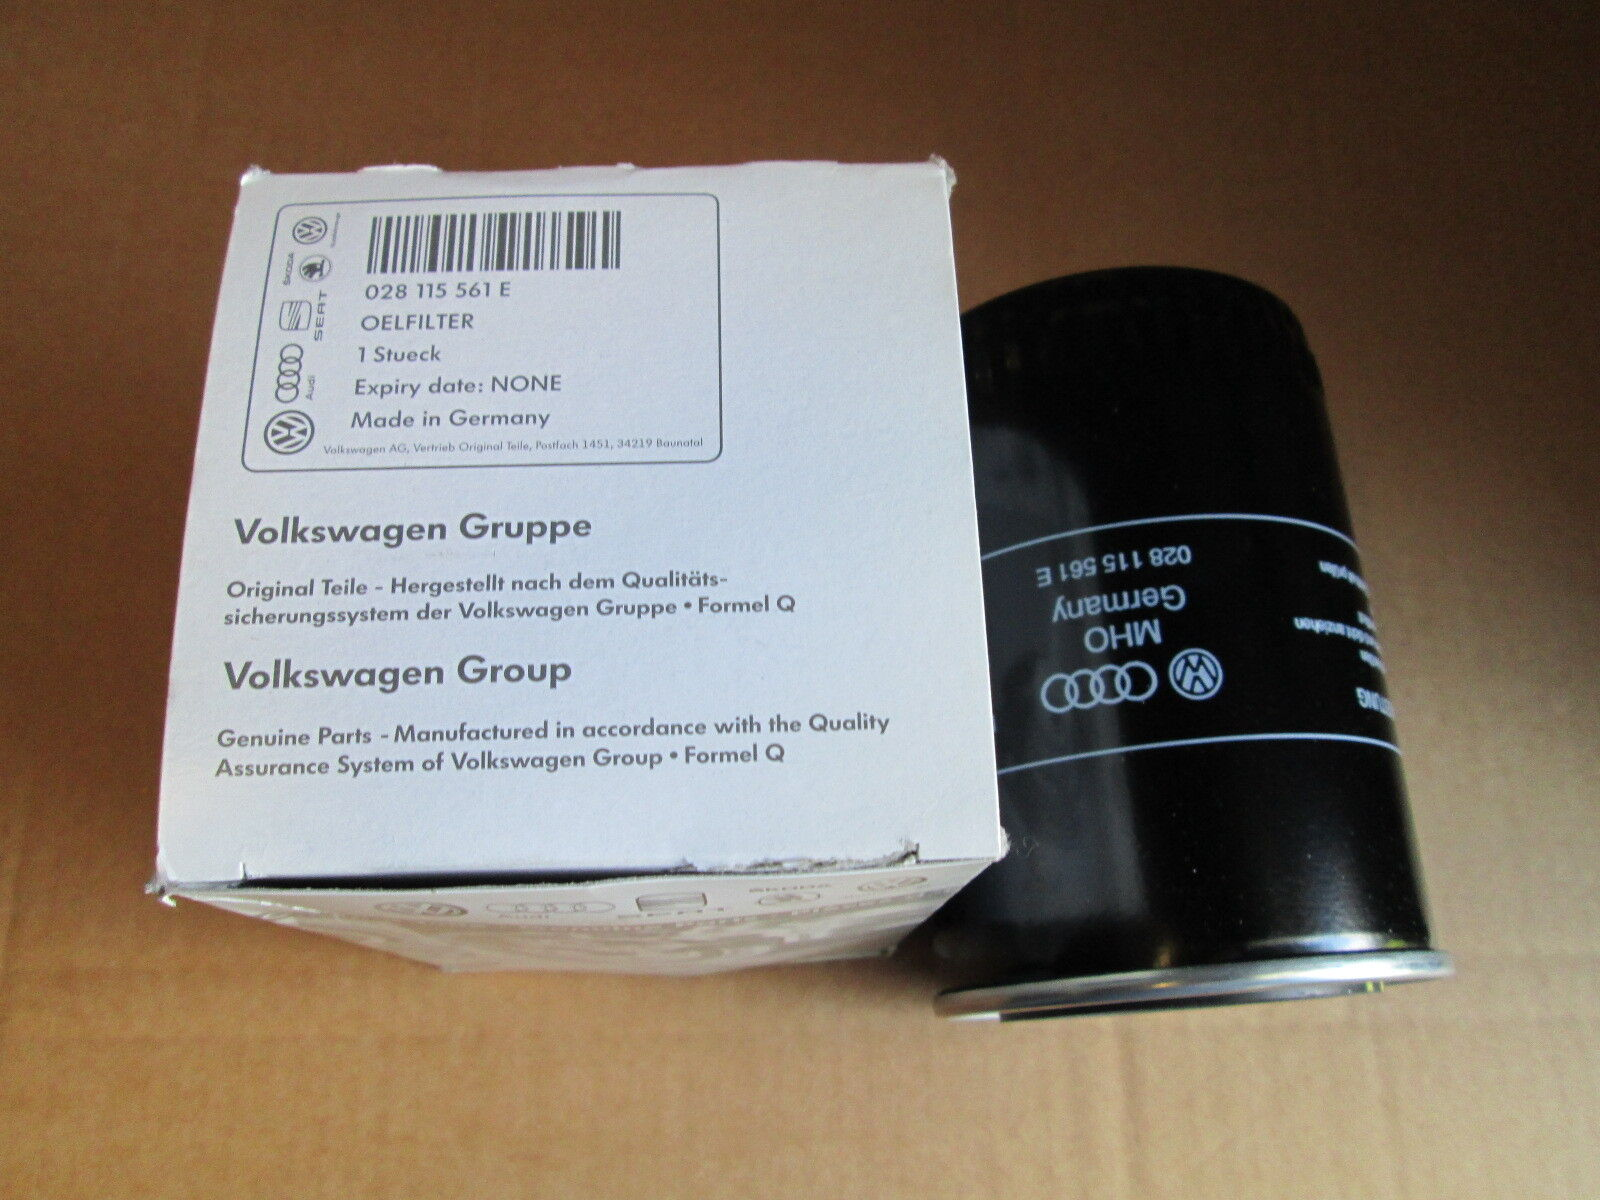 NEW GENUINE VW POLO LUPO 1.7 1.9 DIESEL ENGINE OIL FILTER 030115561C